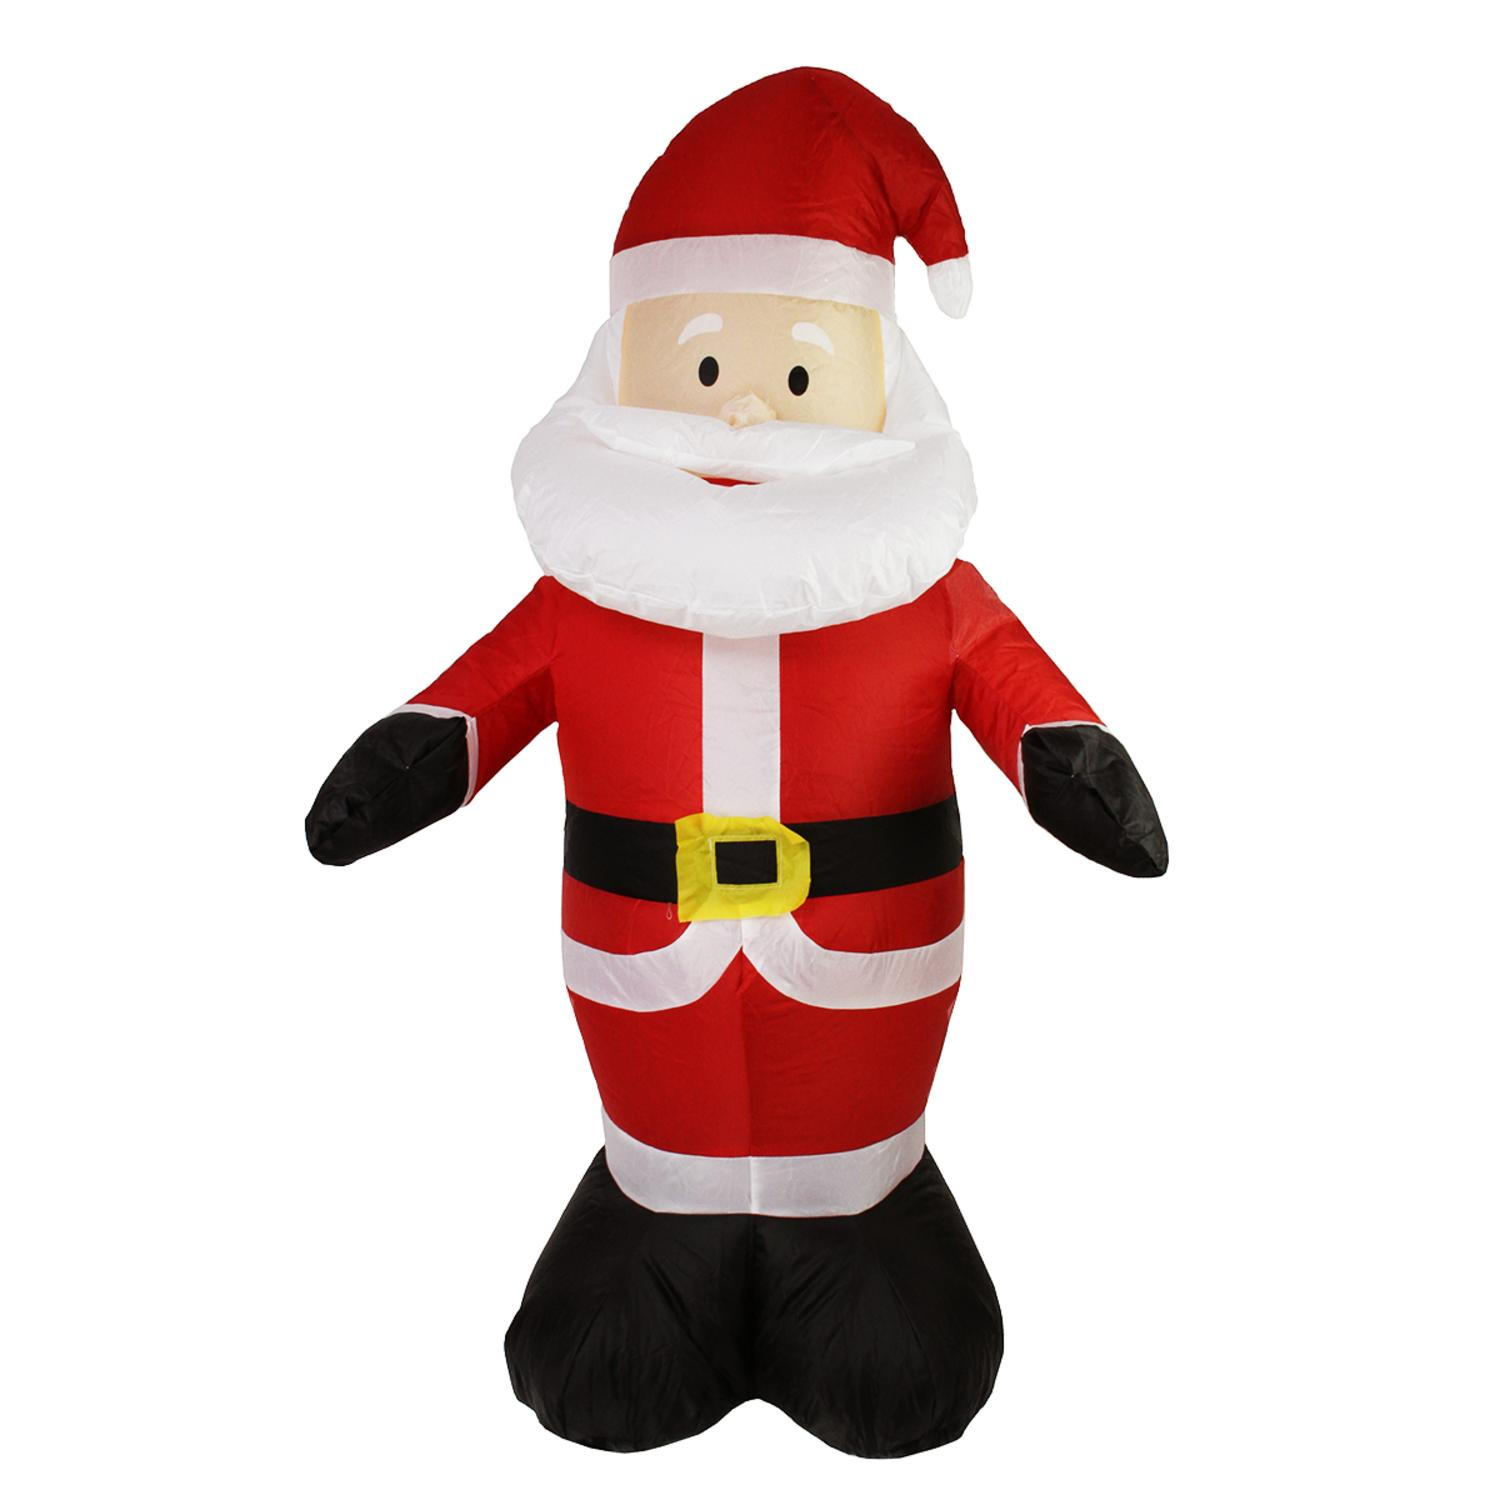 4' Inflatable Lighted Santa Claus Christmas Outdoor Decoration